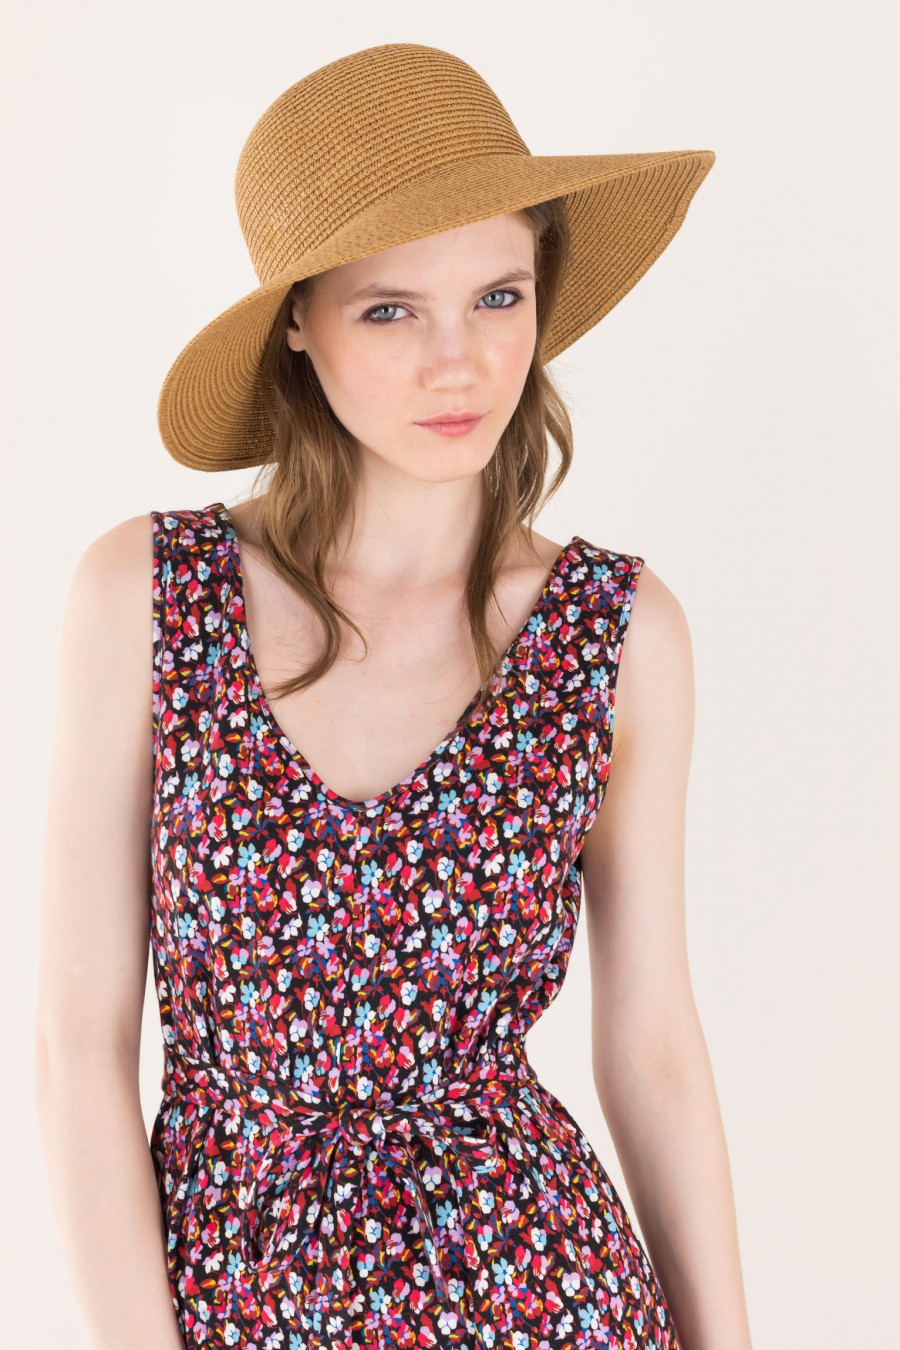 Flowered wide overalls